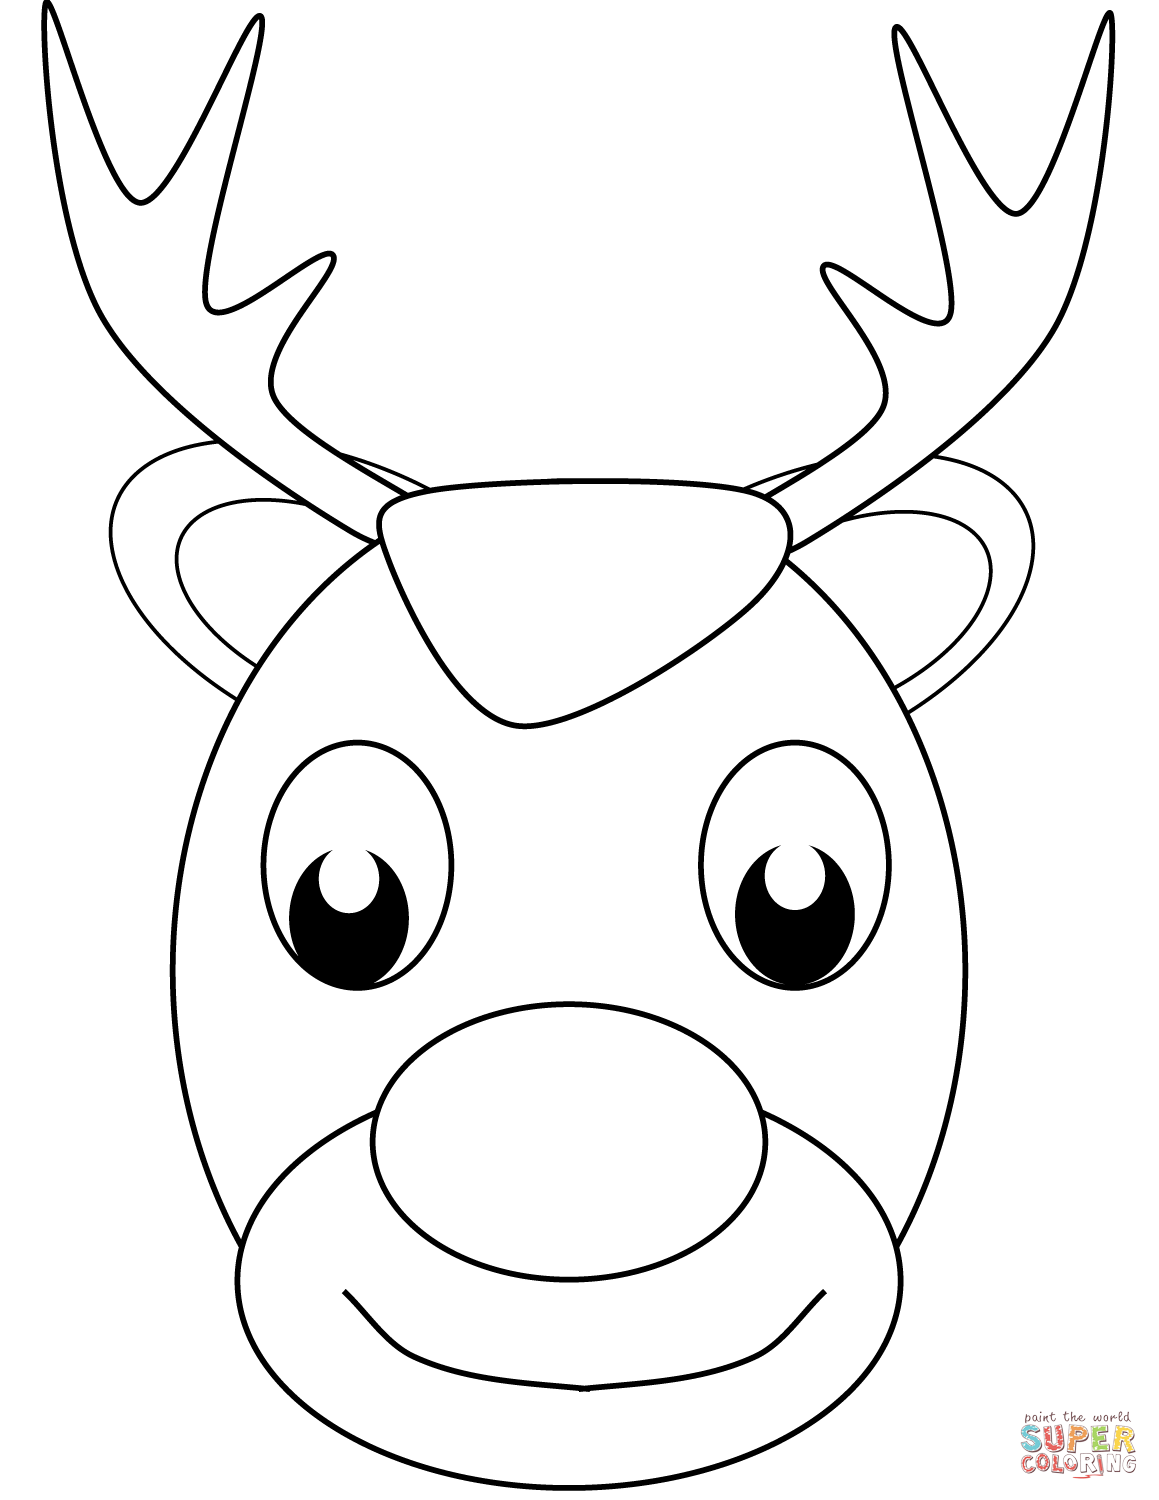 Santa Face Coloring Page With Claus S Reindeer Free Printable Pages